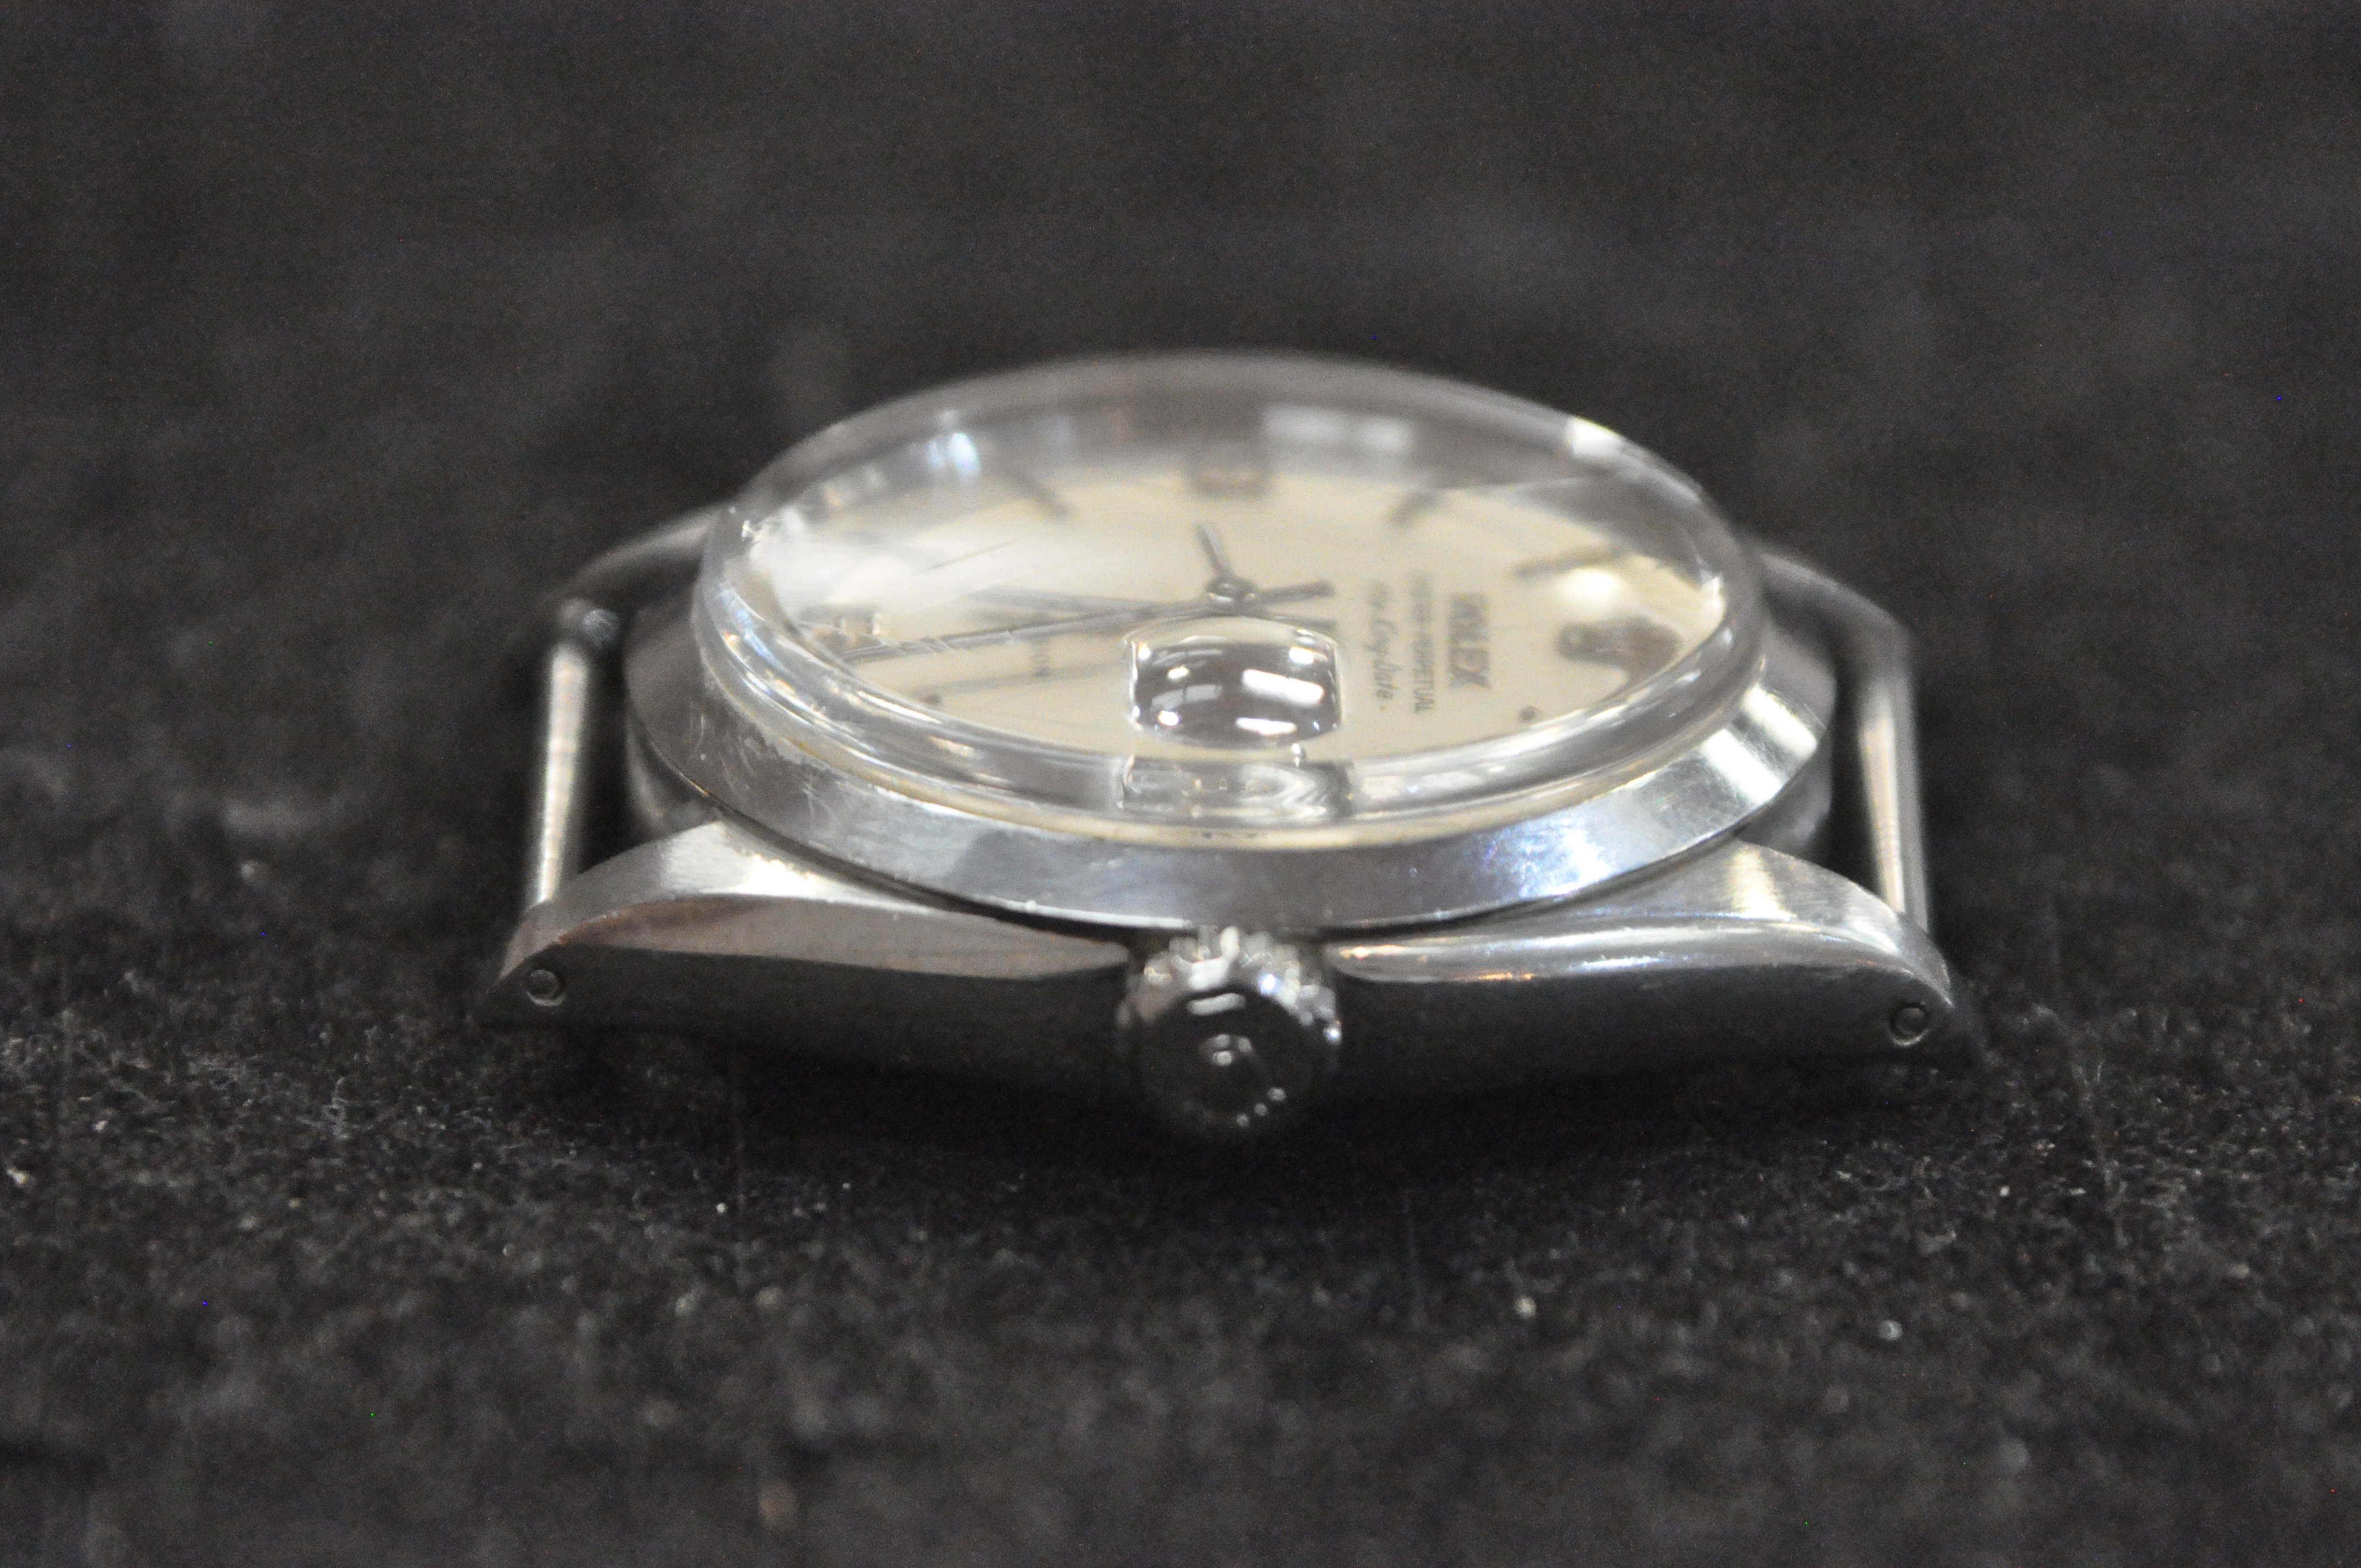 A stainless steel rolex oyster perpetual air king date wristwatch. - Image 9 of 11